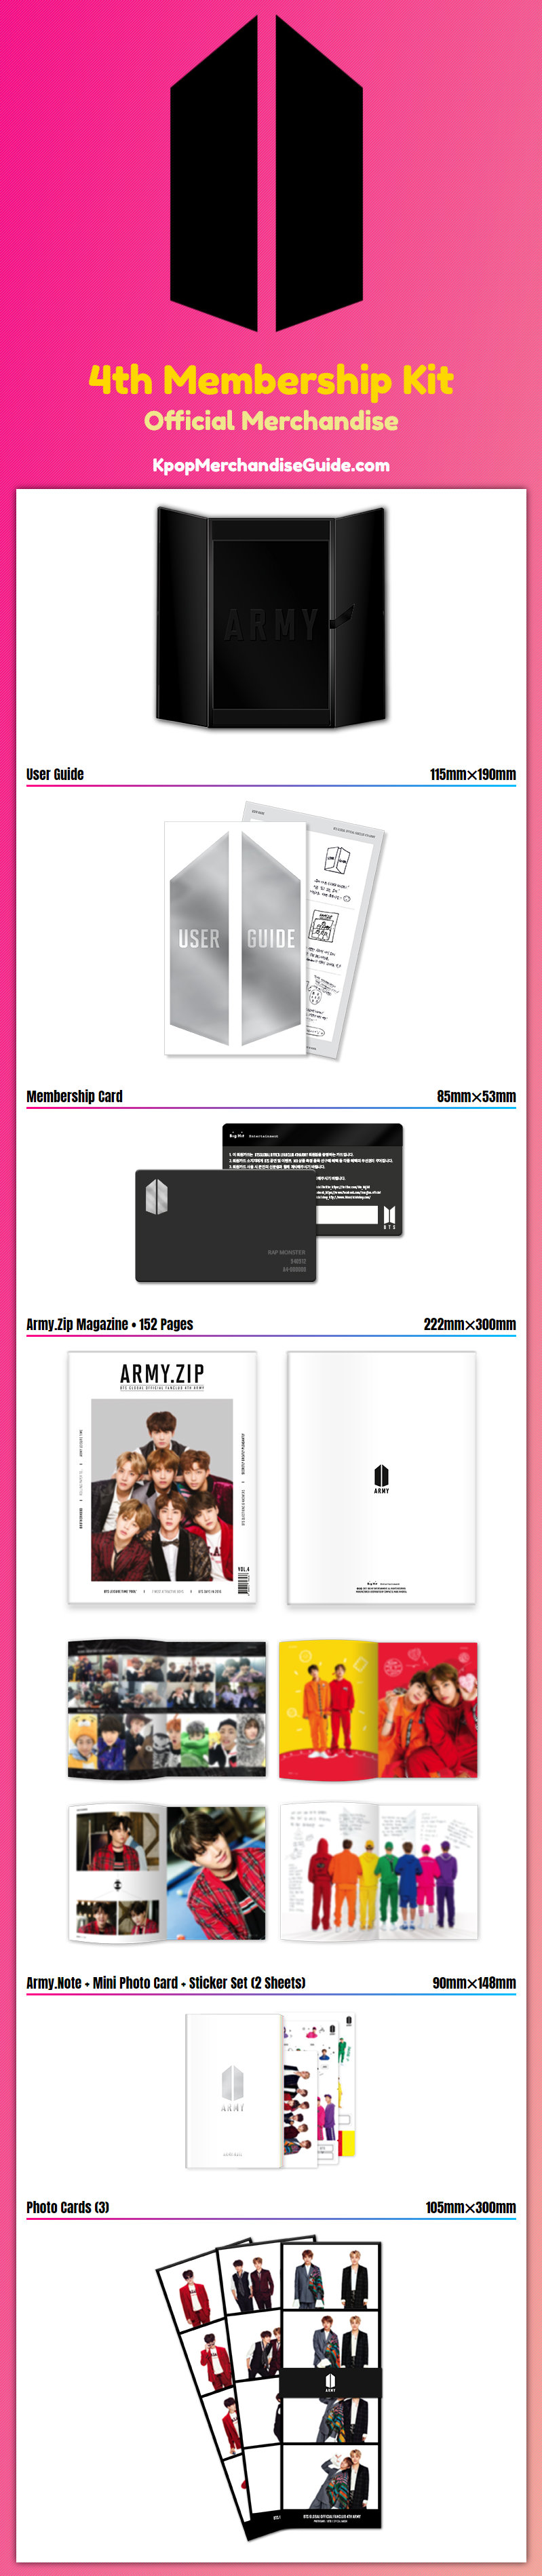 bts global official fanclub 4th army membership kit